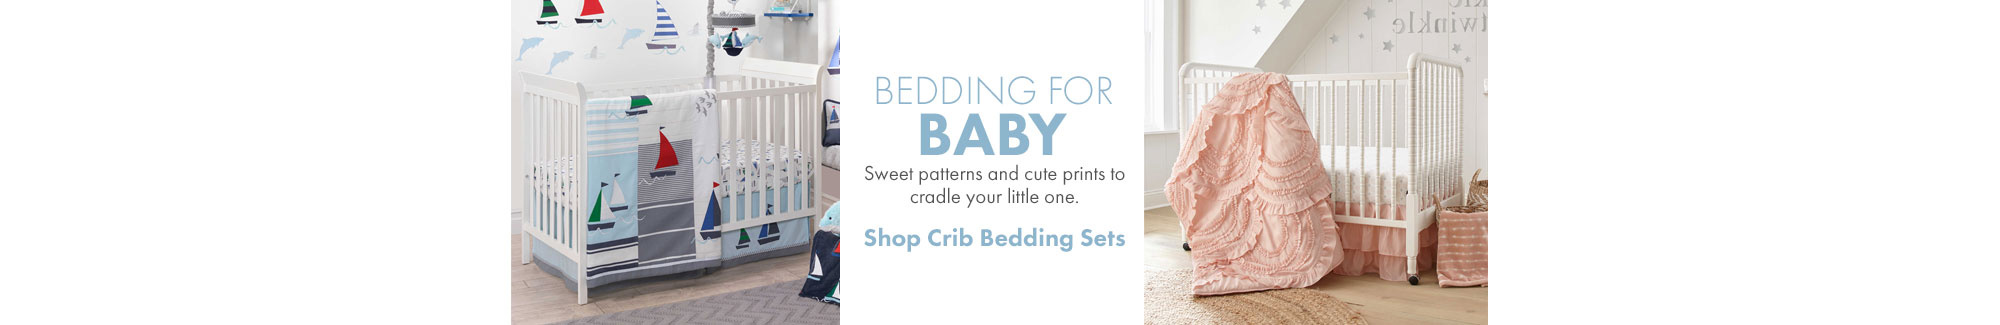 Shop Crib Bedding